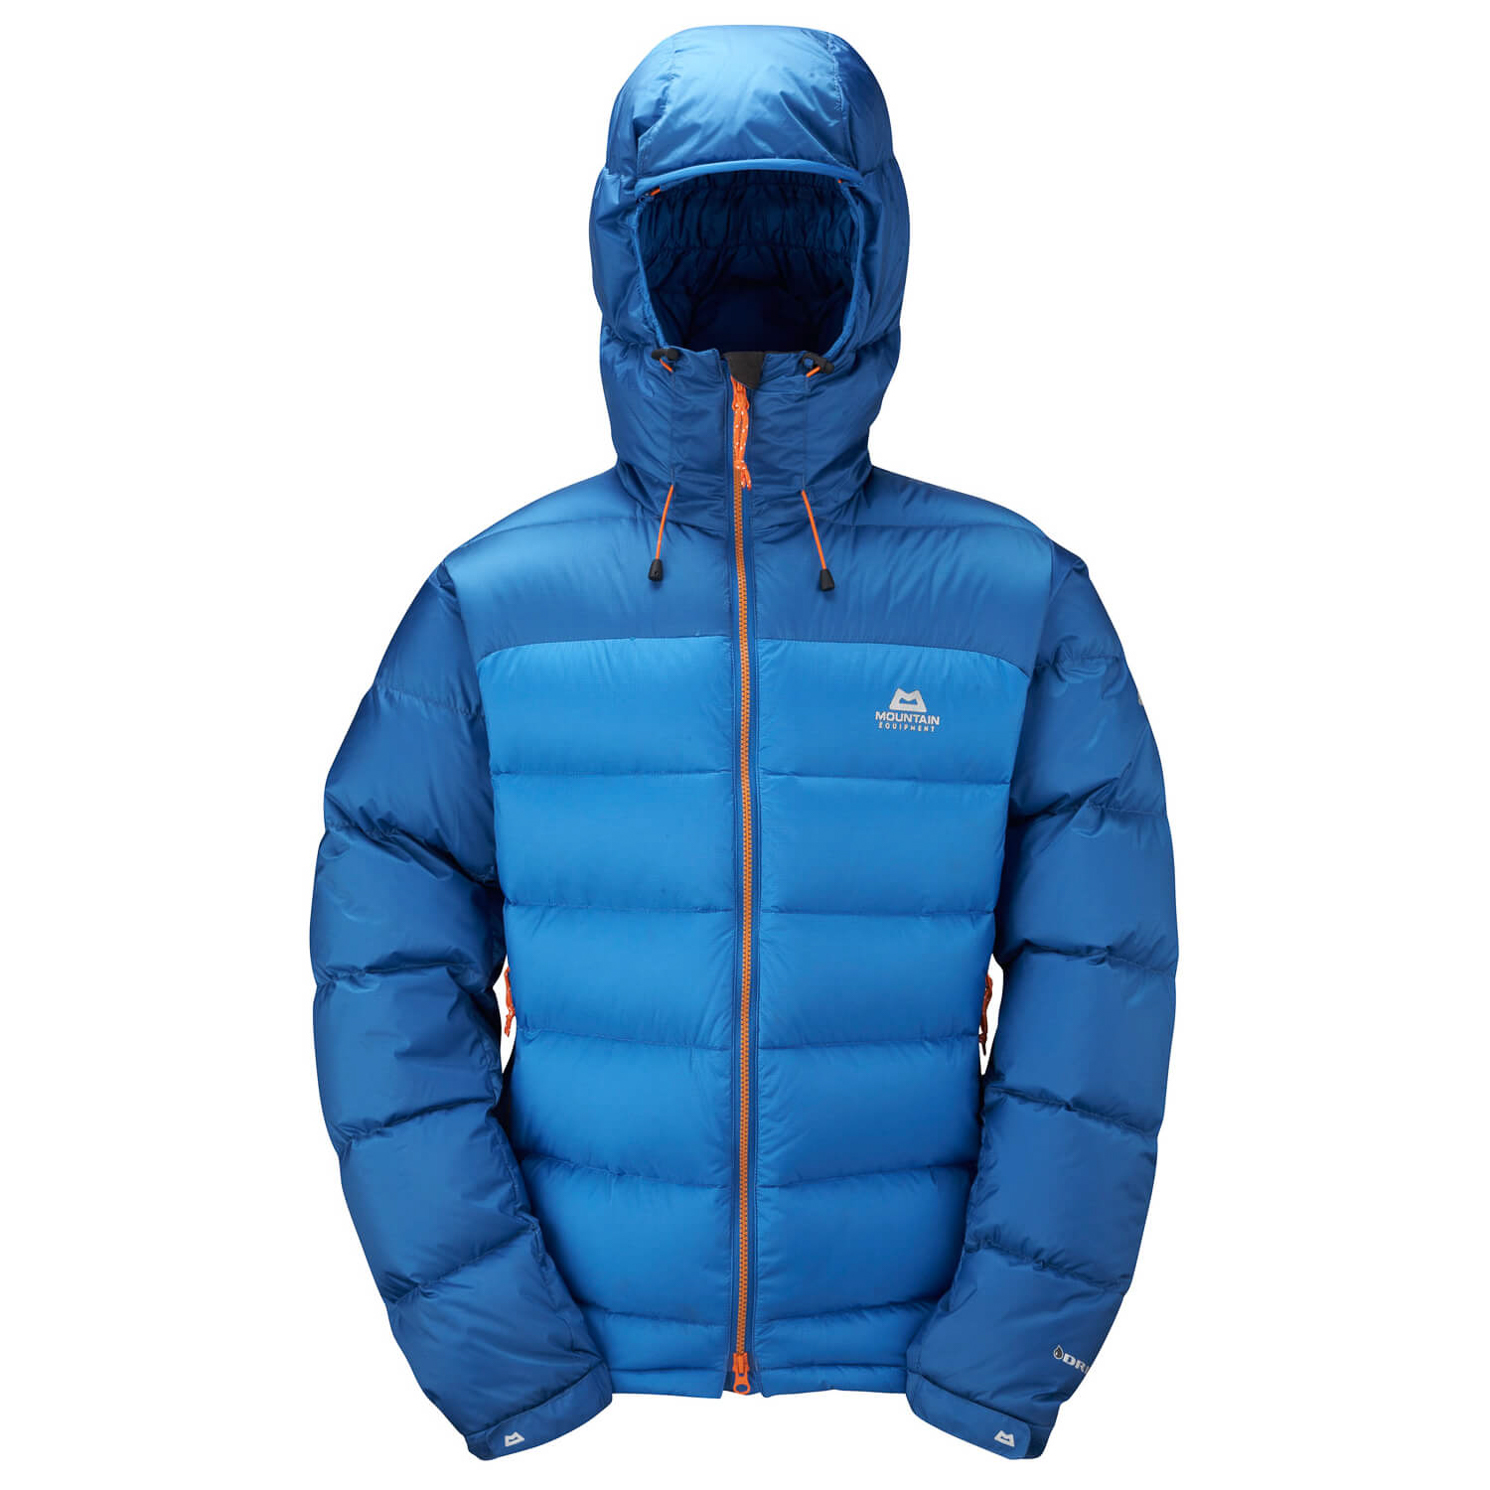 mountain equipment vega jacket daunenjacke online. Black Bedroom Furniture Sets. Home Design Ideas